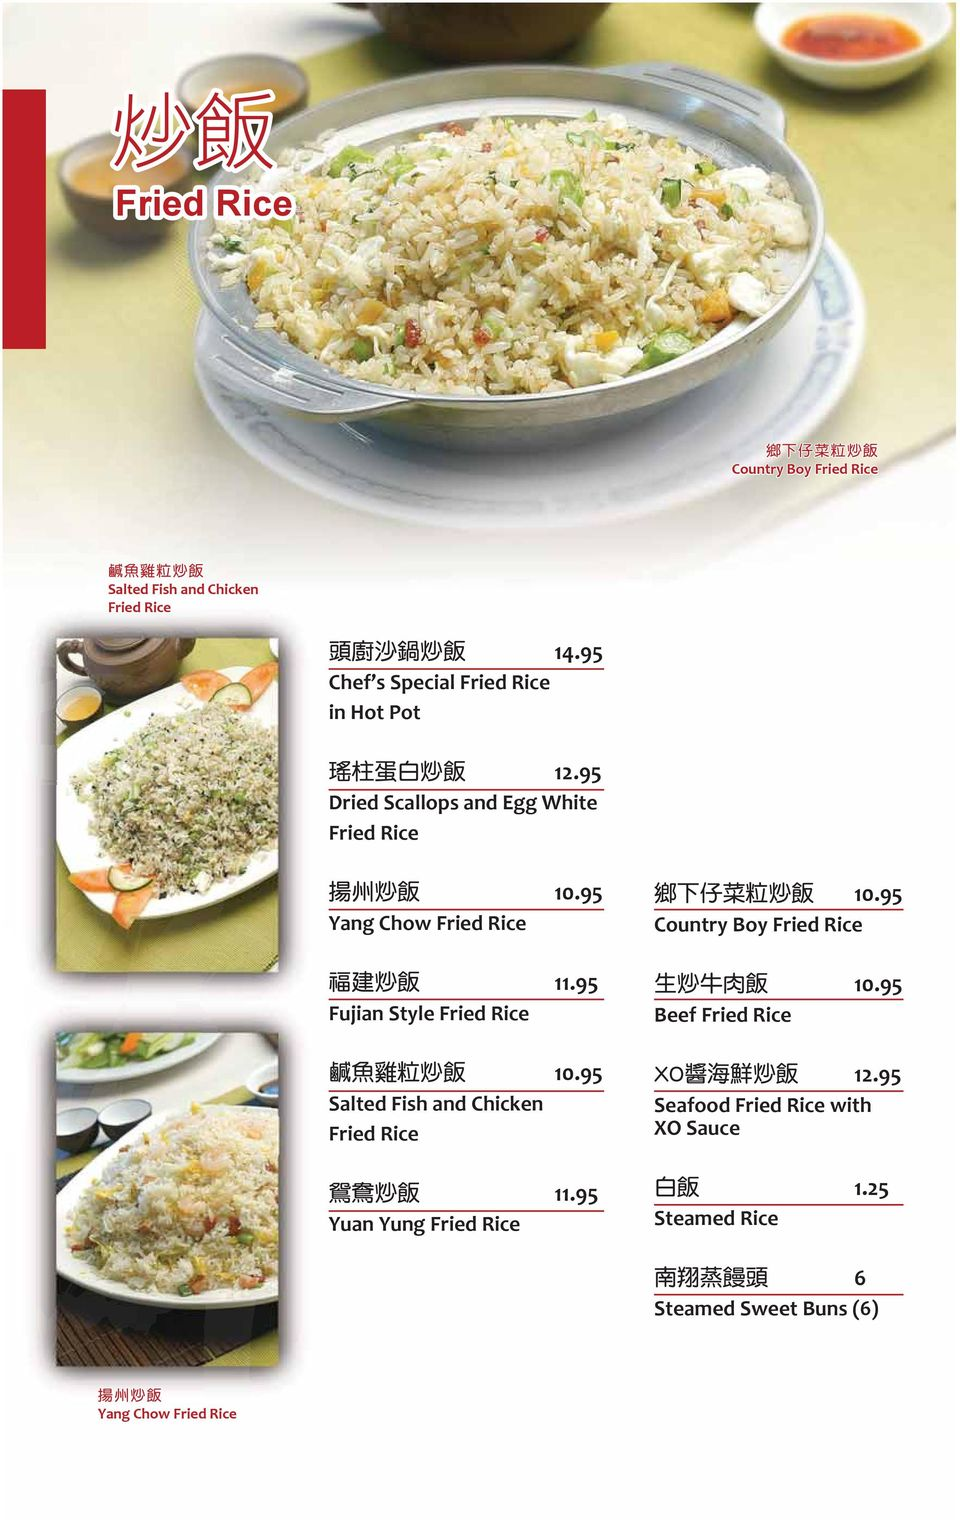 95 Yang Chow Fried Rice 11.95 Fujian Style Fried Rice 10.95 Salted Fish and Chicken Fried Rice 11.